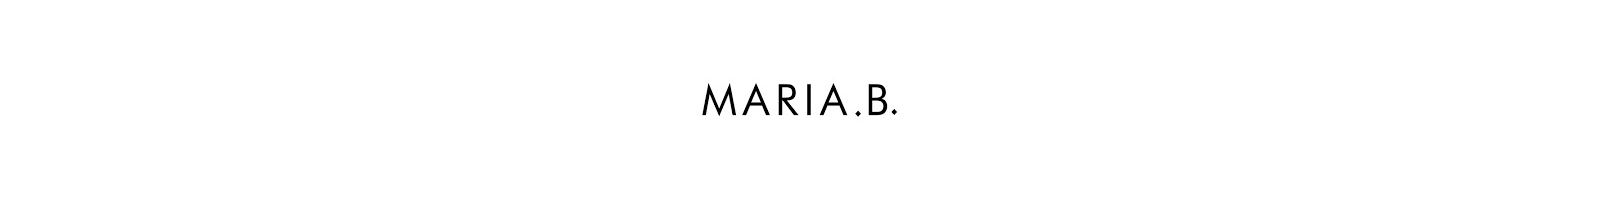 MariaB.png